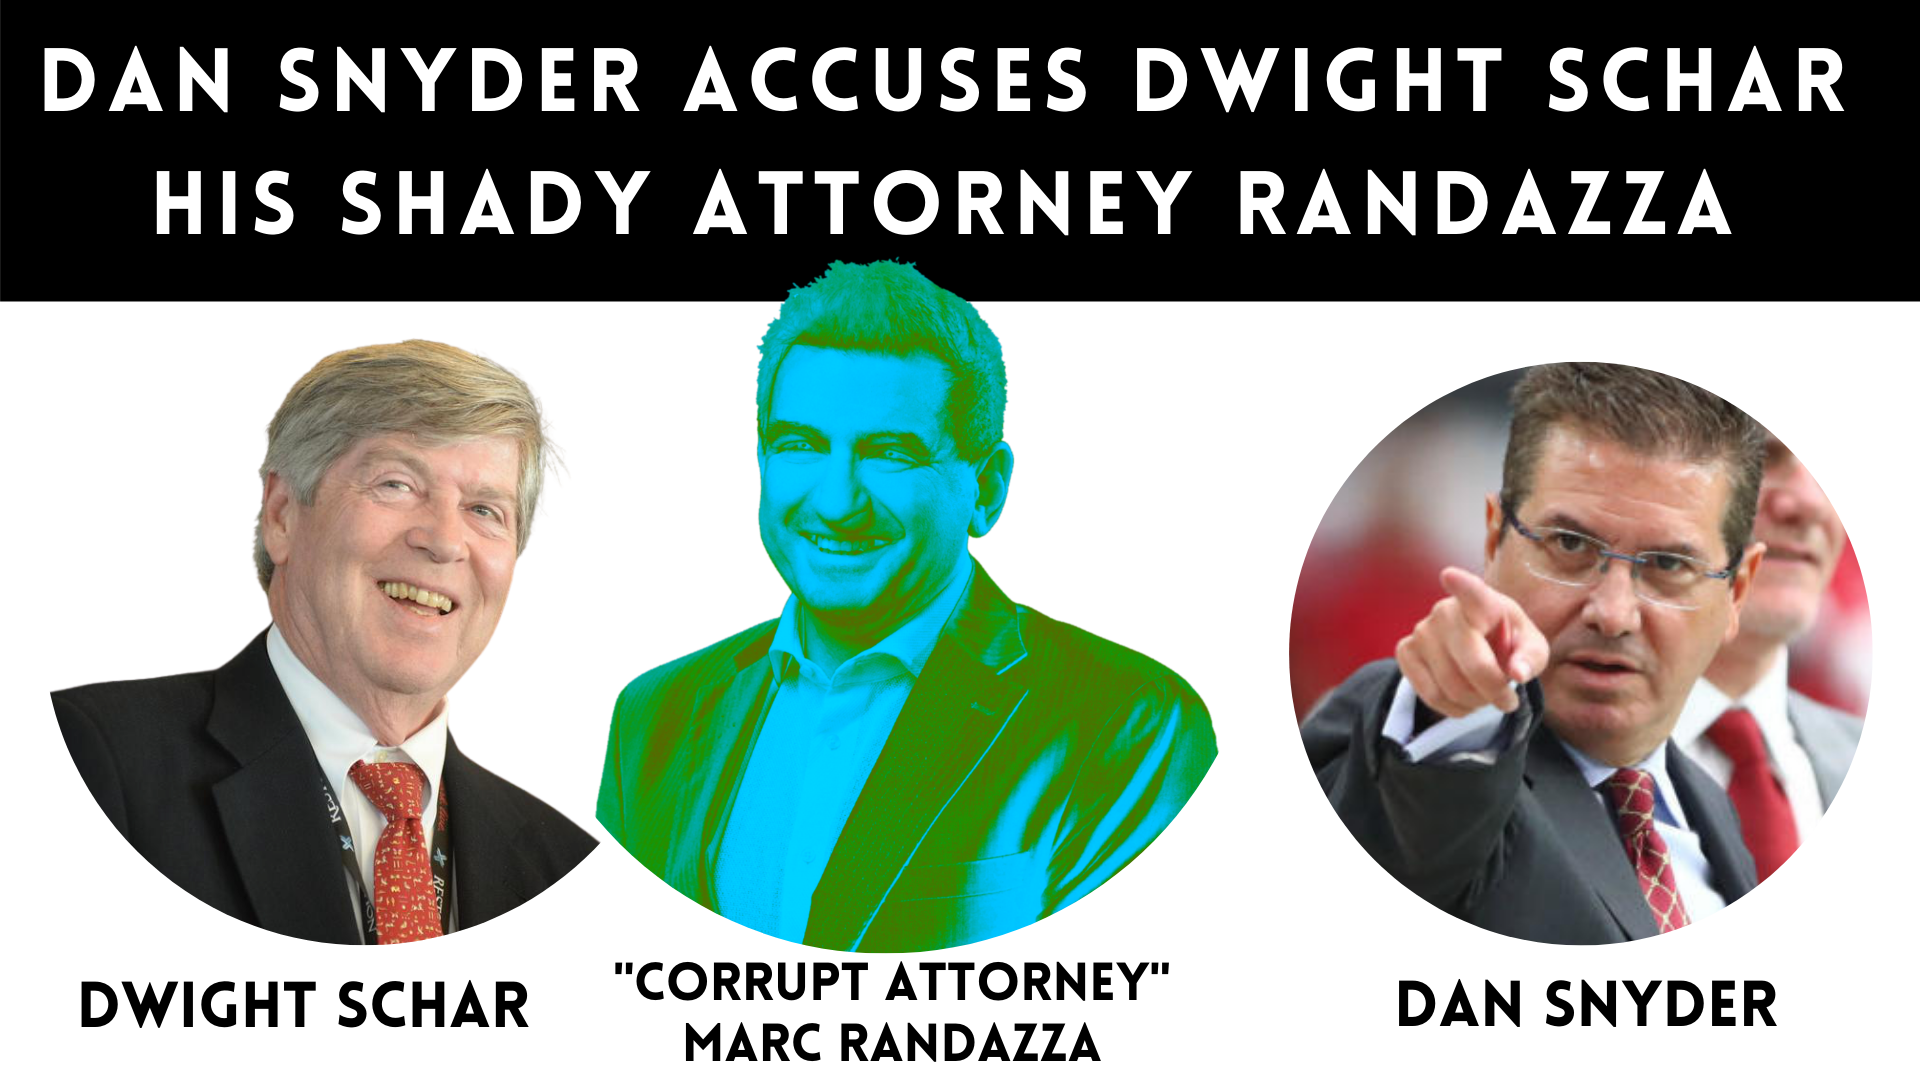 Dan Snyder and Don Juravin Fight Corrupt Marc Randazza and Dwight Schar. Richard Arrighi Joins.